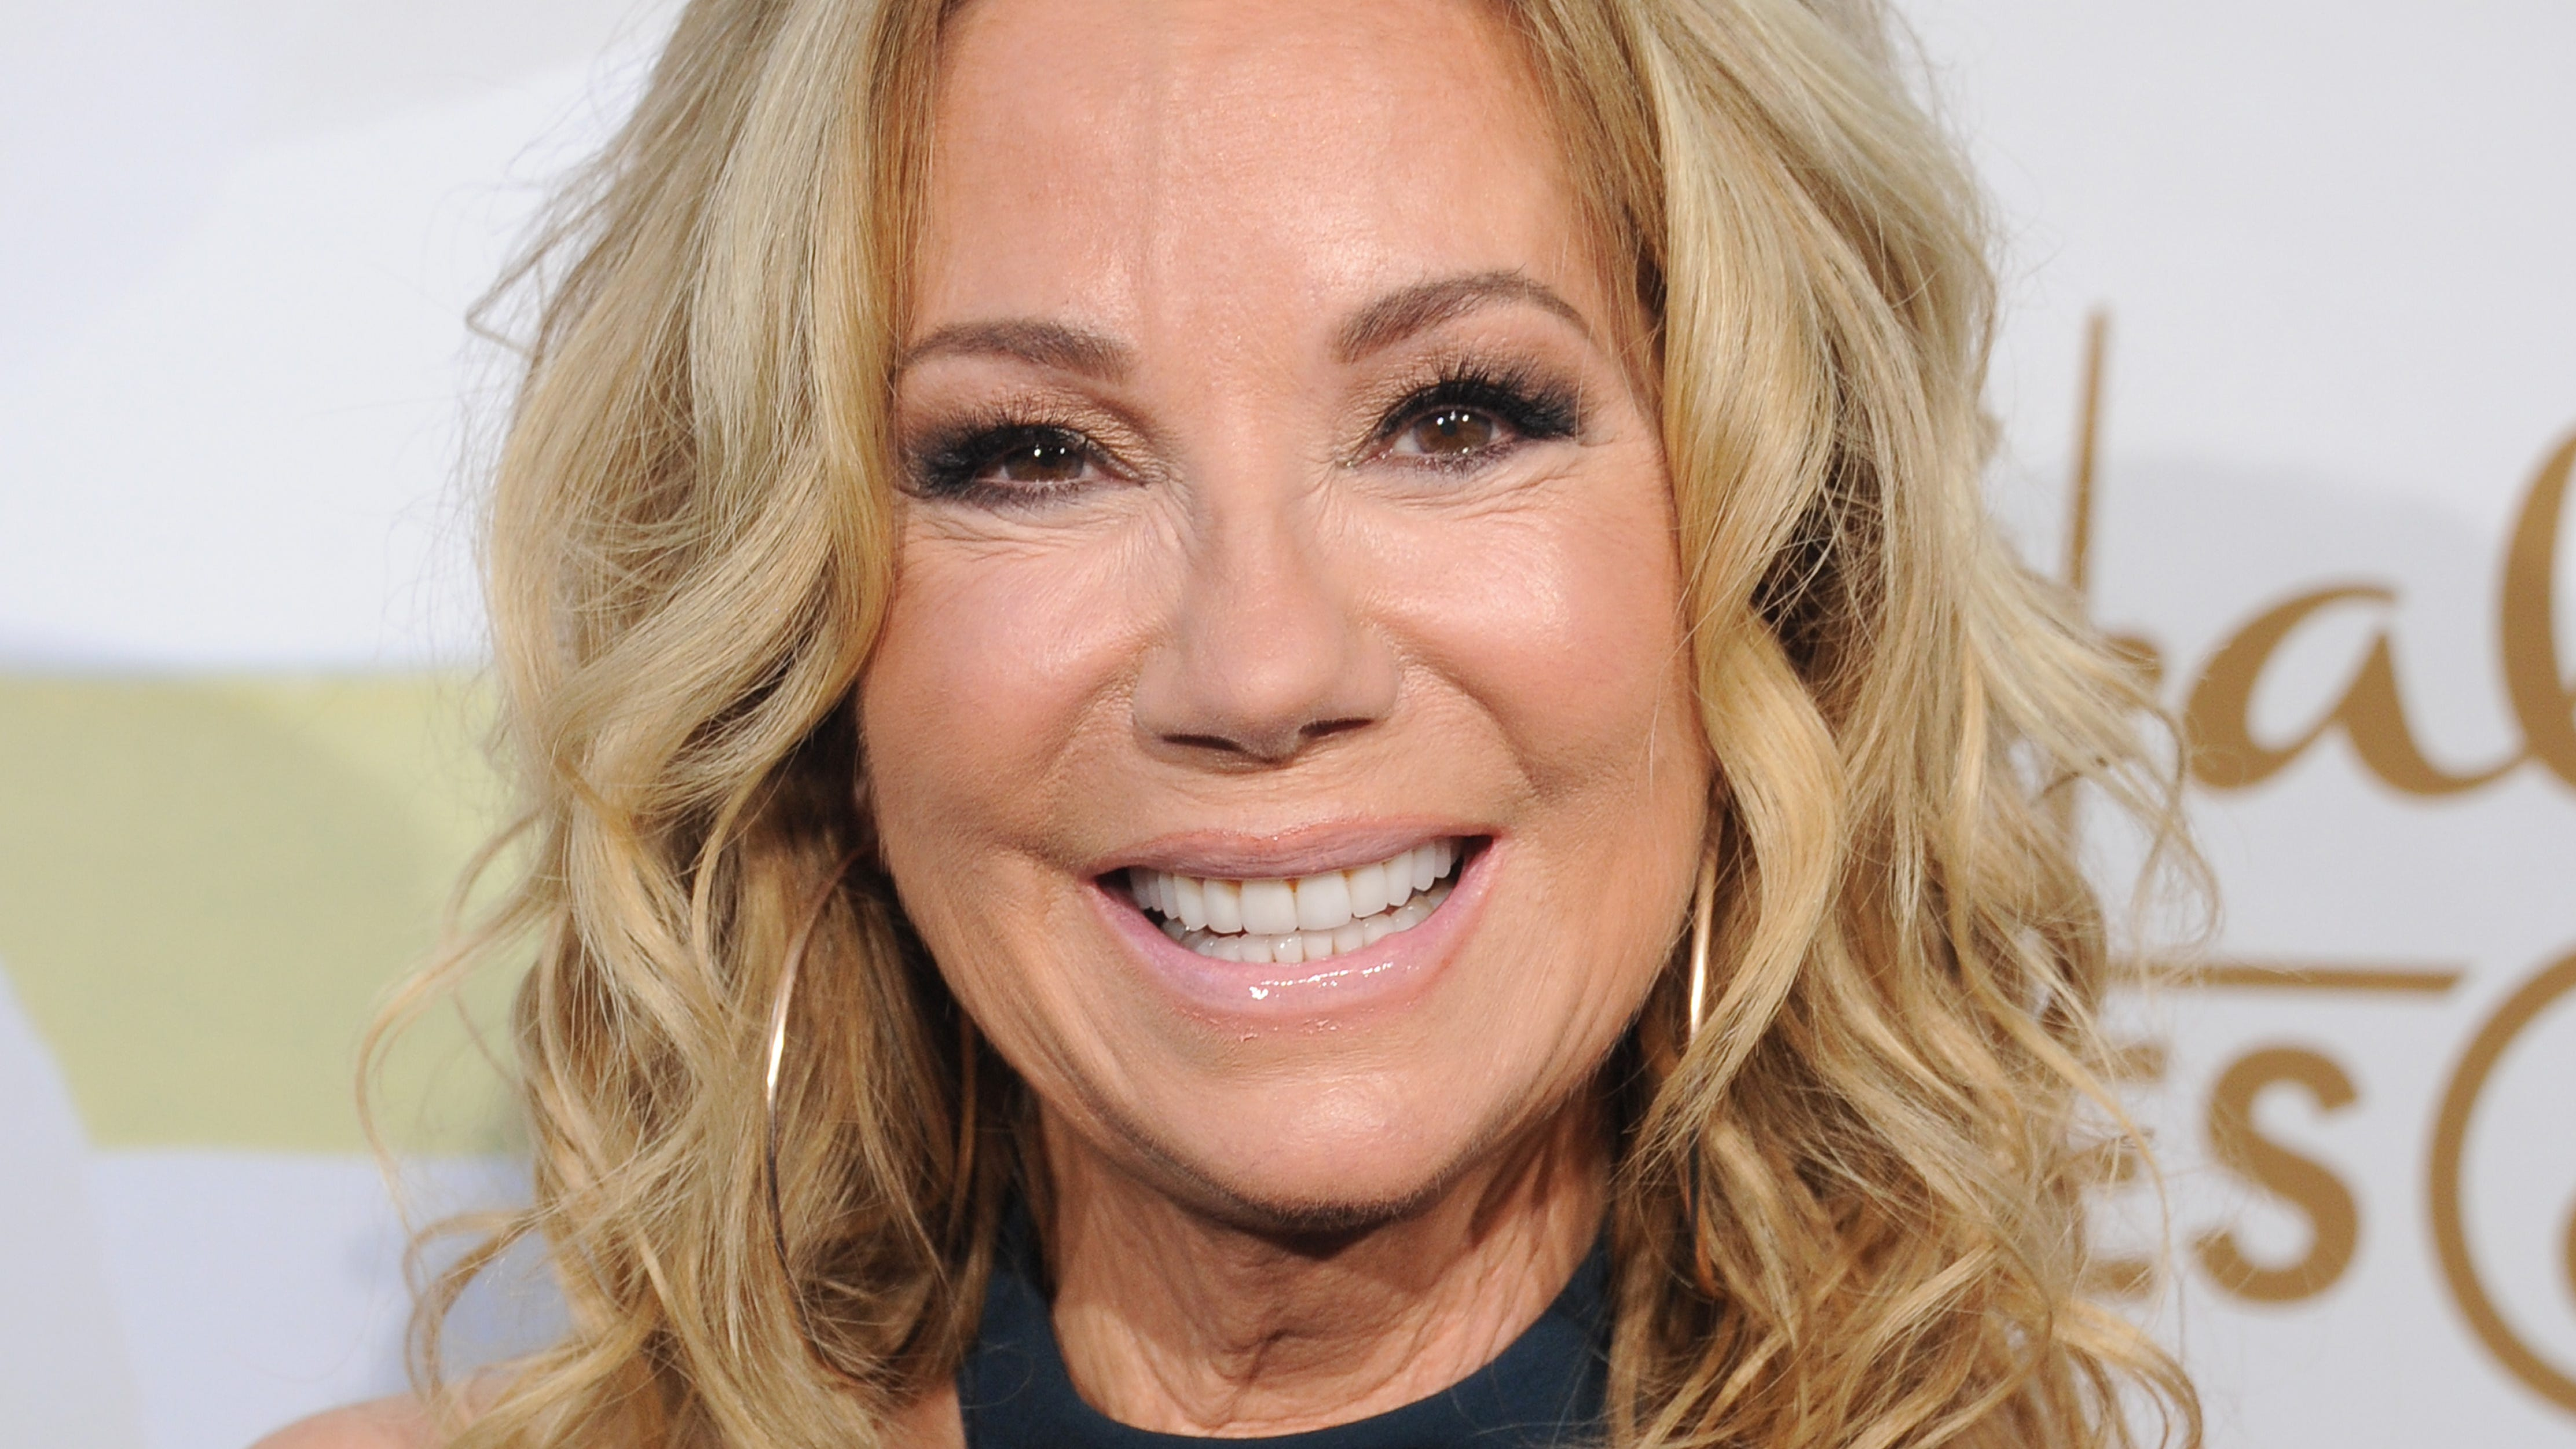 BEVERLY HILLS, CA - JULY 27: Kathie Lee Gifford arrives at the 2017 Summer TCA Tour - Hallmark Channel And Hallmark Movies And Mysteries at a private residence on July 27, 2017 in Beverly Hills, California. (Photo by Gregg DeGuire/WireImage) ORG XMIT: 775010011 ORIG FILE ID: 823721512